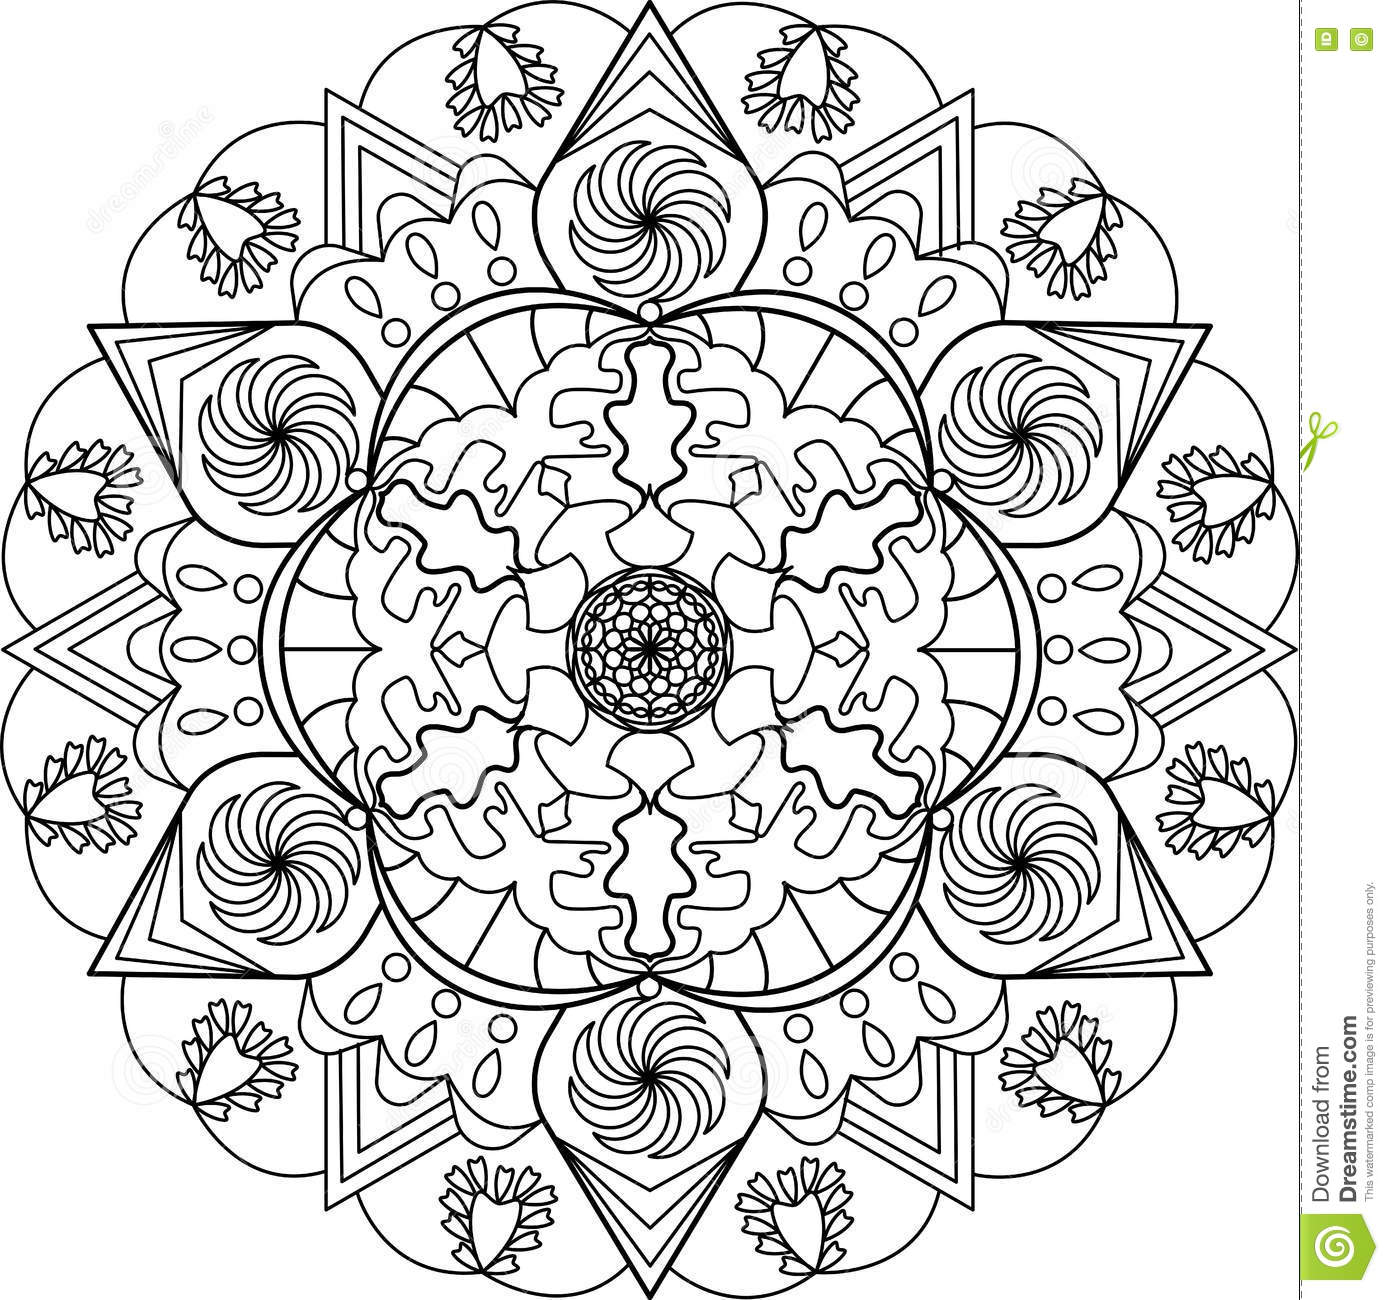 Adult Coloring Page Mandala Stock Vector Illustration Of Design